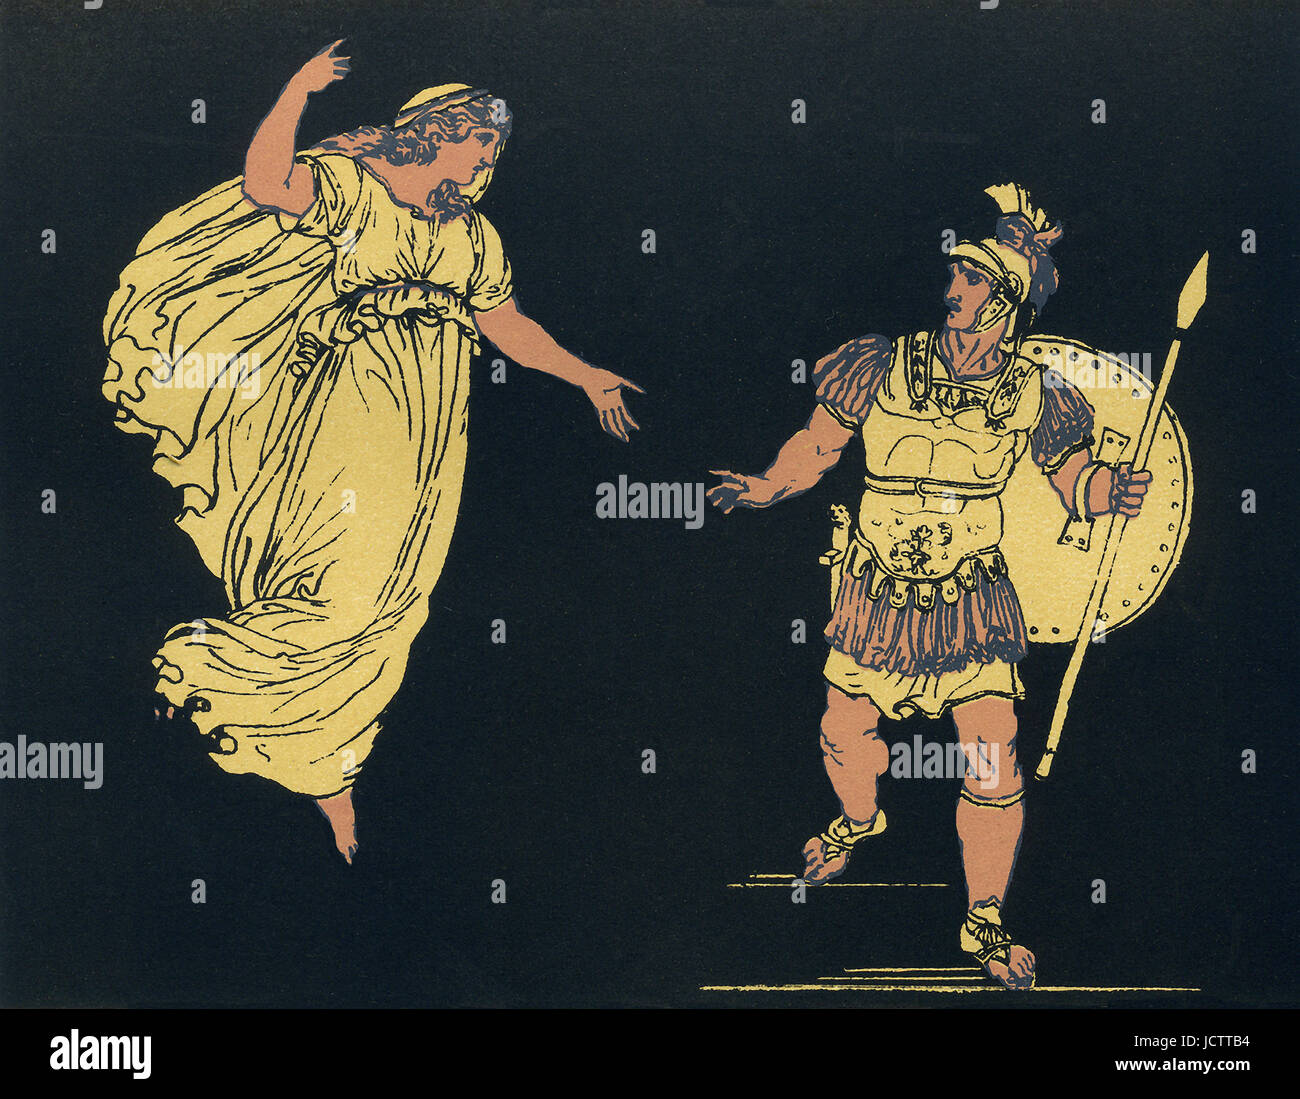 The Greeks have taken control of Troy and set it afire. The Trojan hero Aeneas prepares to escape Troy and capture - Stock Image